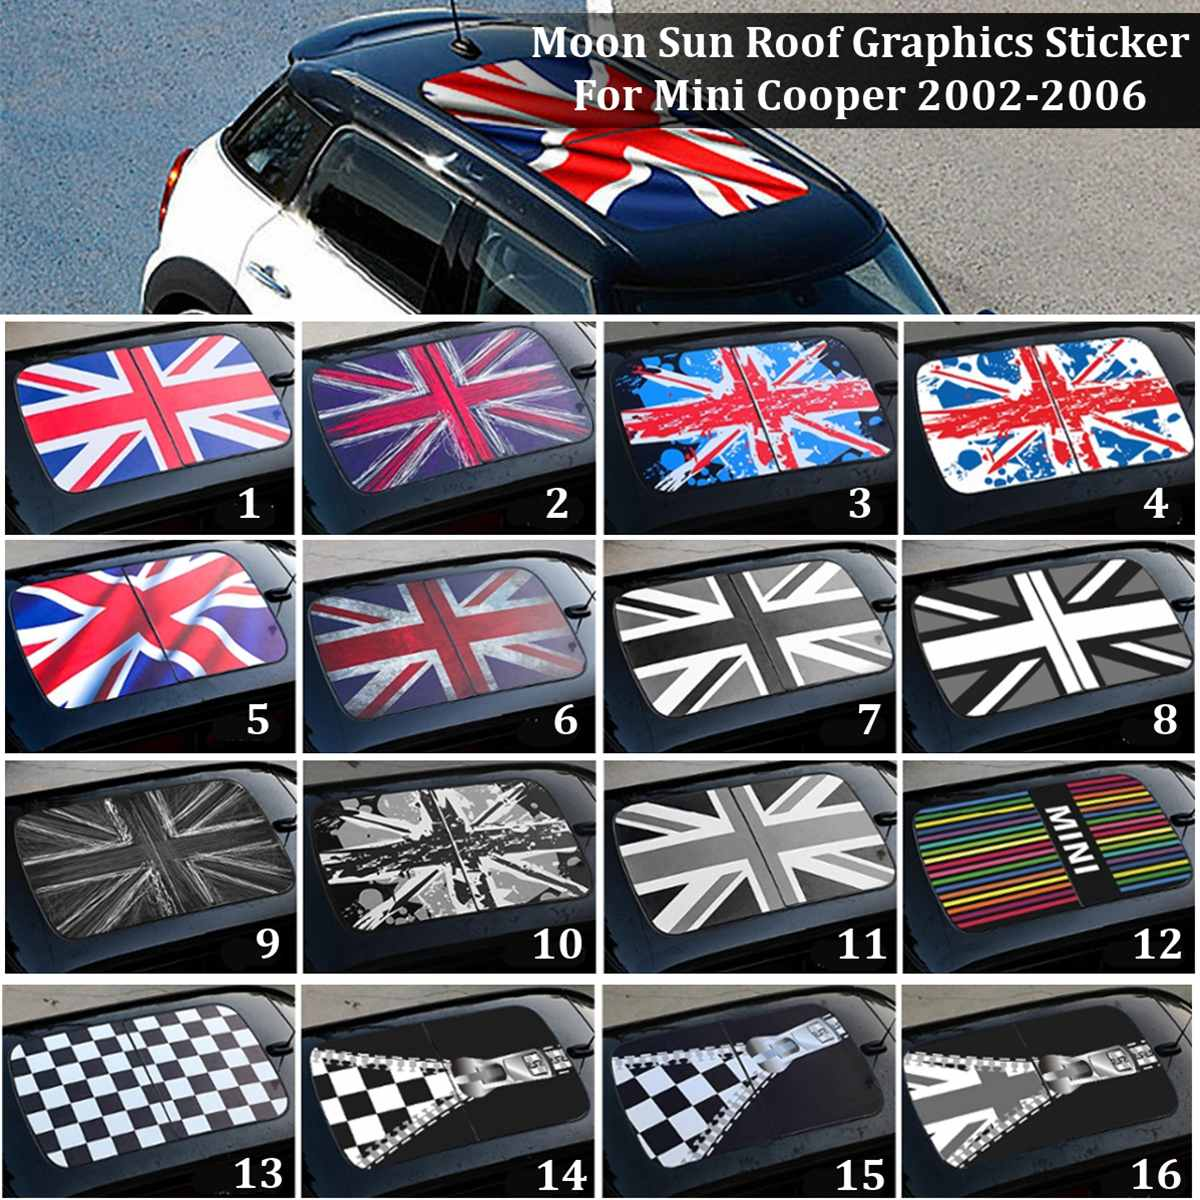 PVC Car Sun Roof Graphics Decor Sticker Decal DIY Styling For Mini Cooper 2002-2006 F54 F55 F56 R55 R56 R60